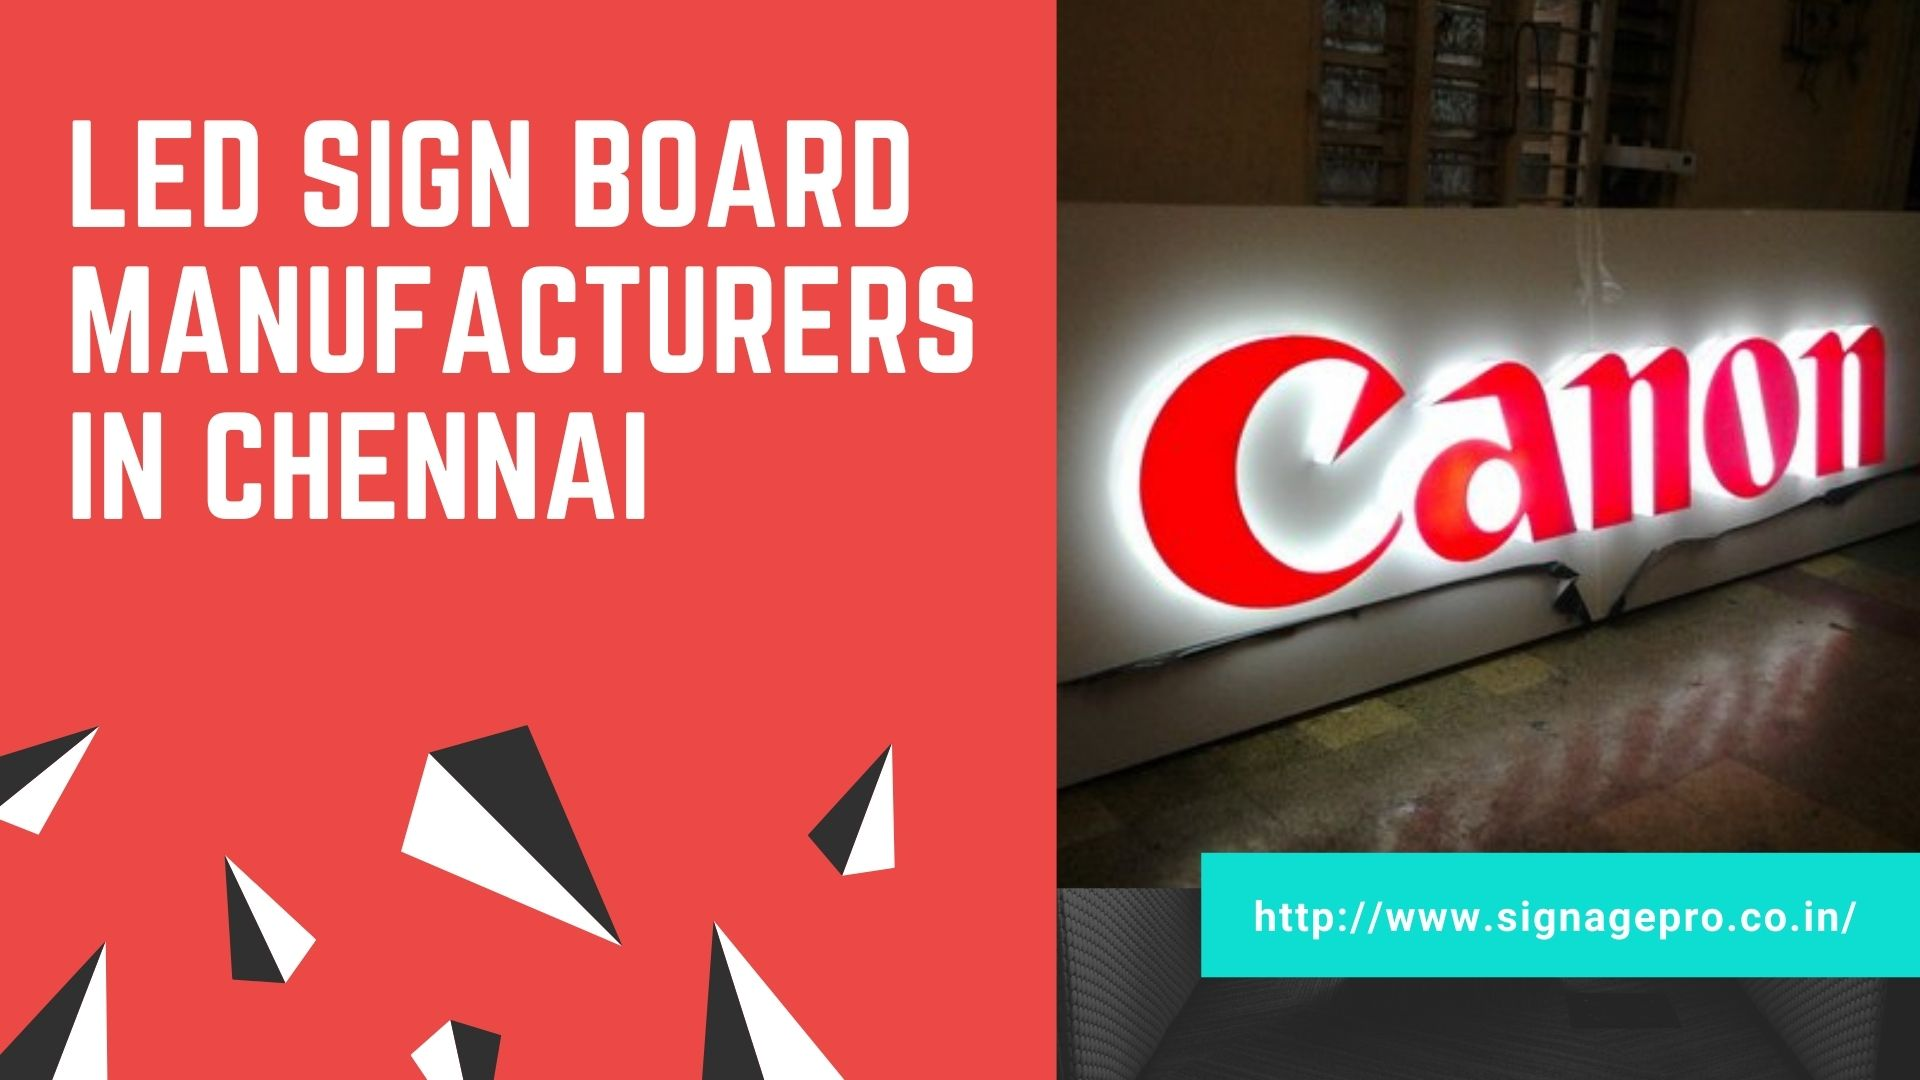 Signagepro - LED, ACP Sign Board Manufacturers in Chennai